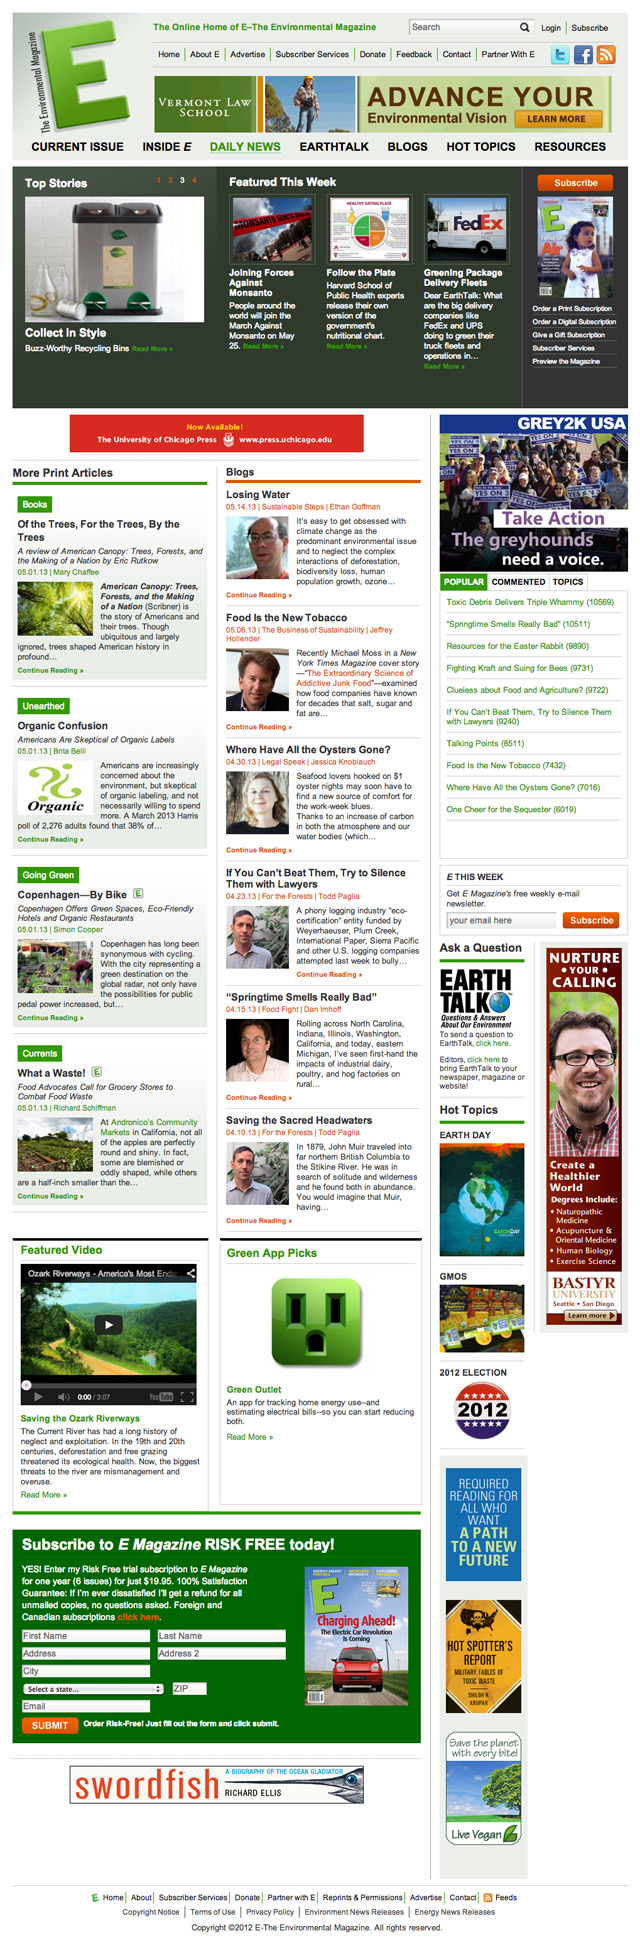 E – The Environmental Magazine